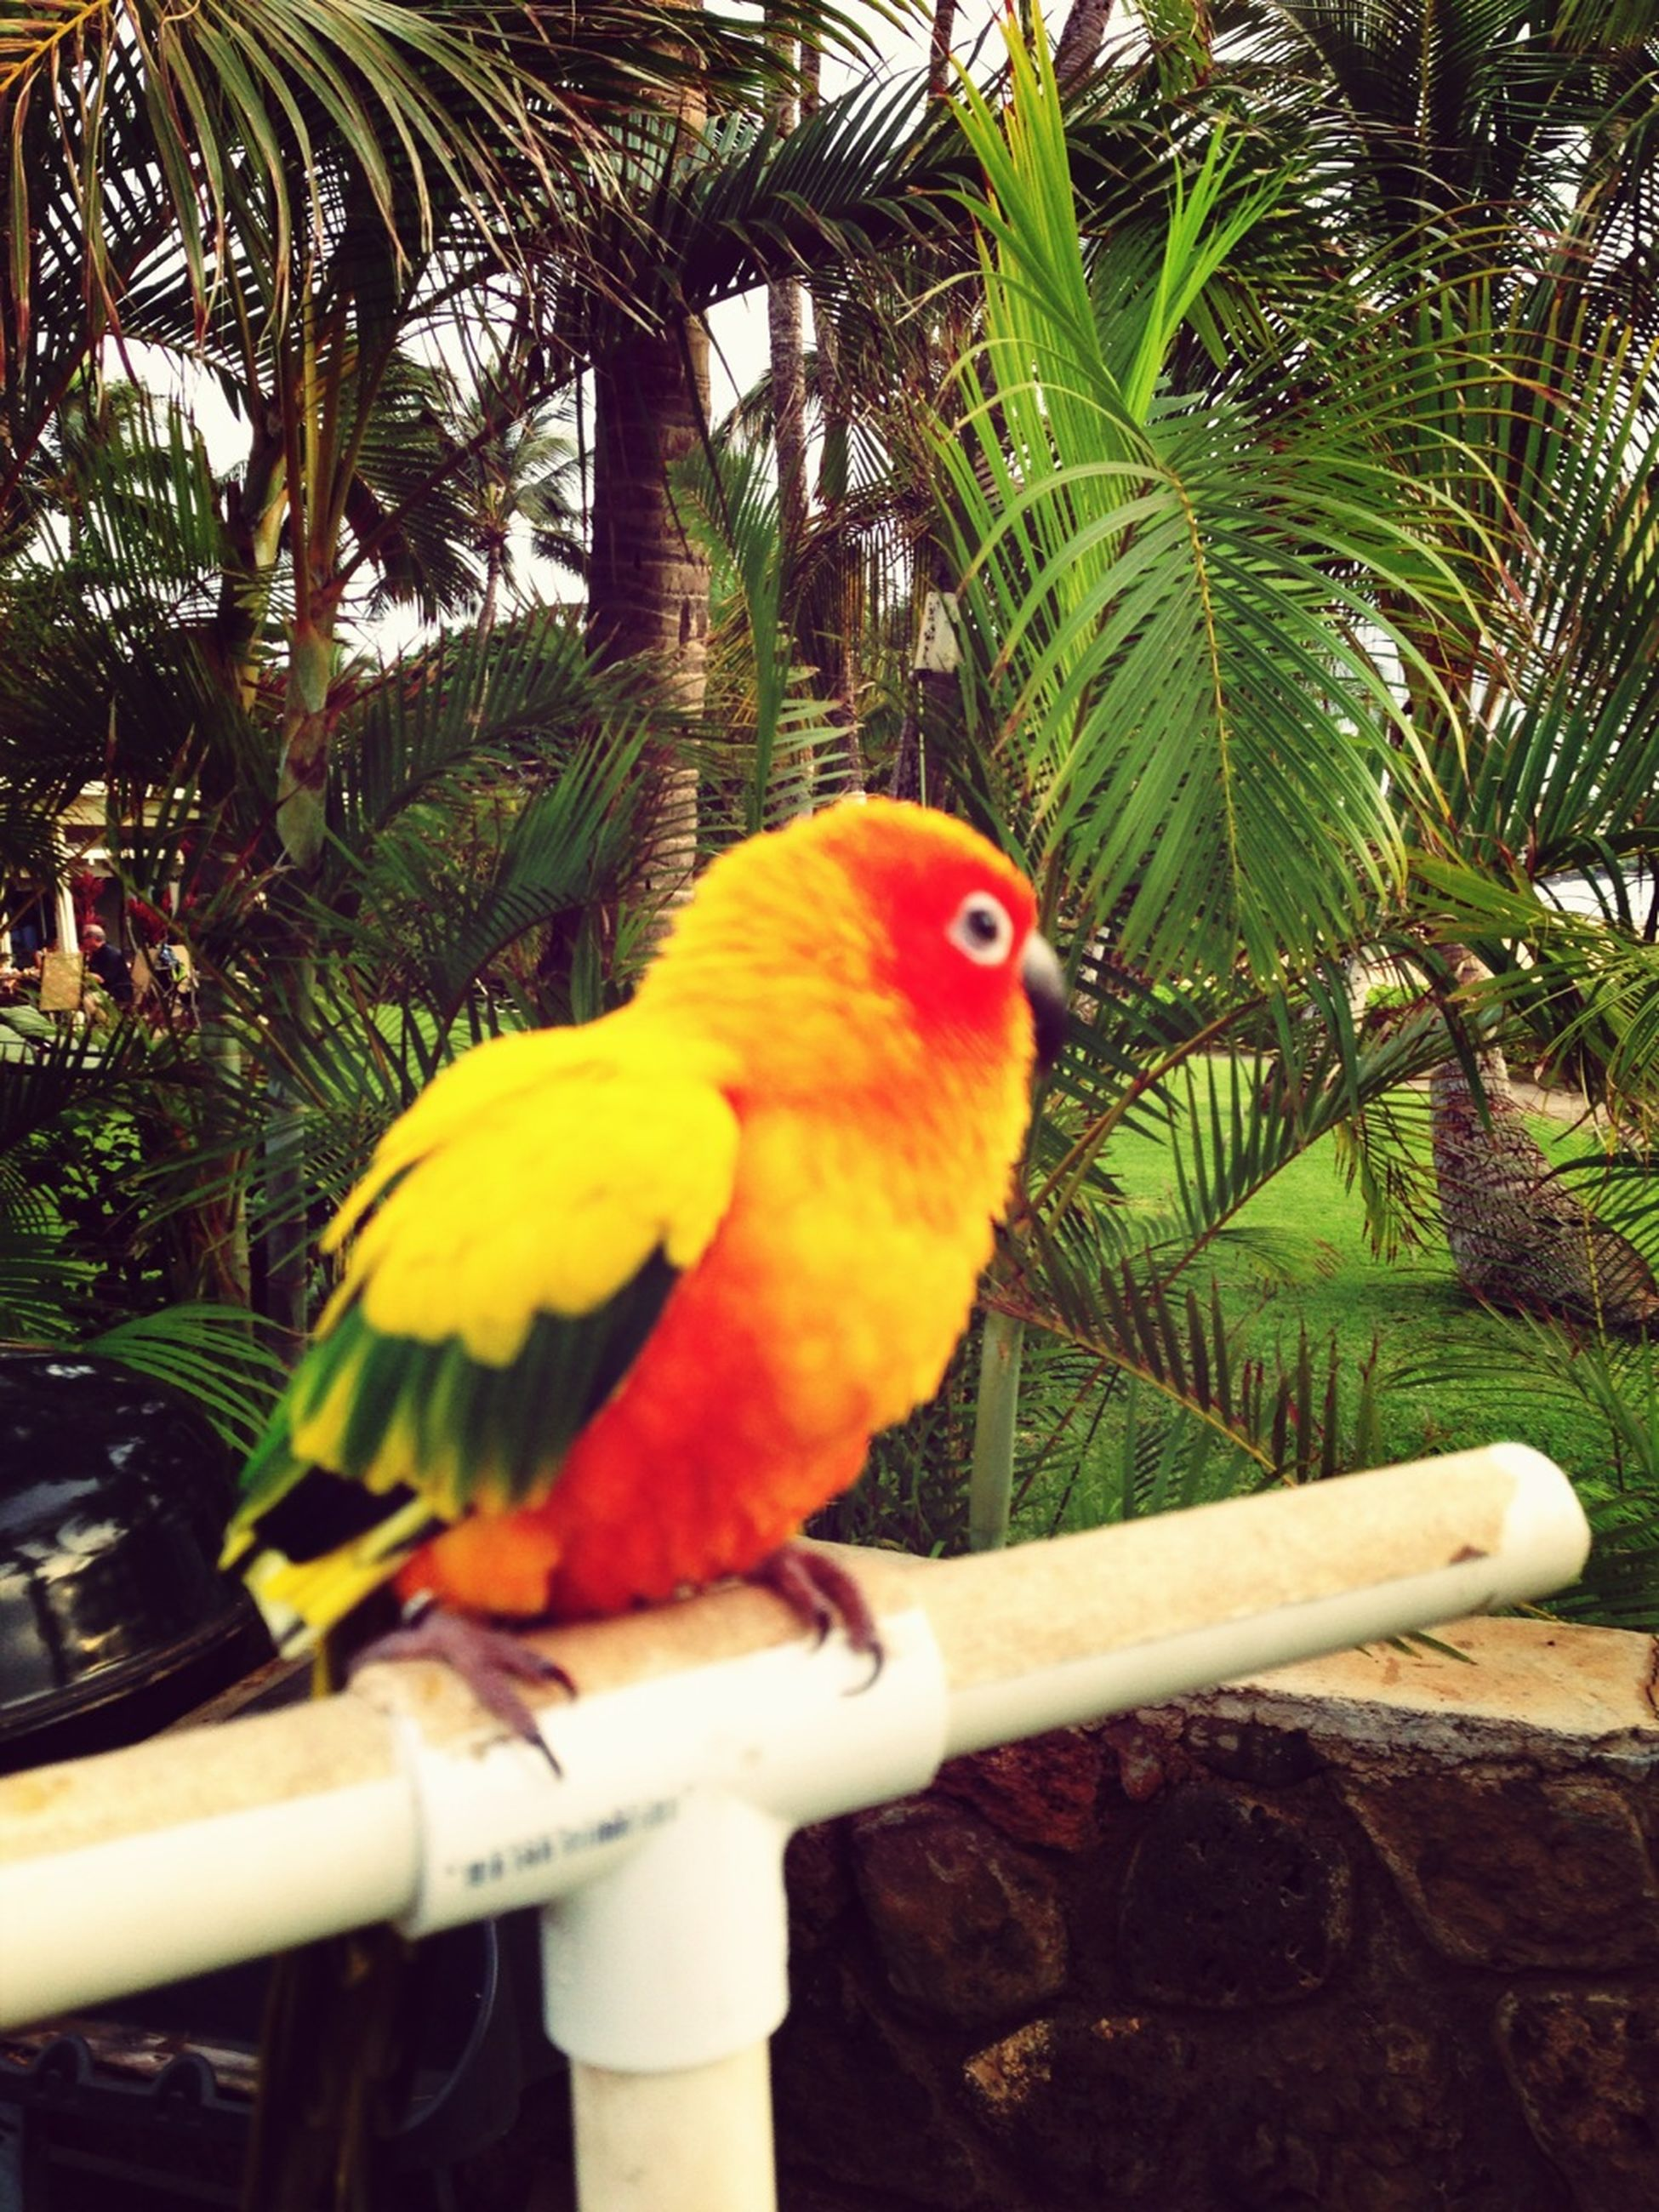 bird, animal themes, parrot, one animal, tree, animals in the wild, perching, branch, wildlife, beak, low angle view, close-up, nature, day, focus on foreground, outdoors, palm tree, cage, no people, multi colored